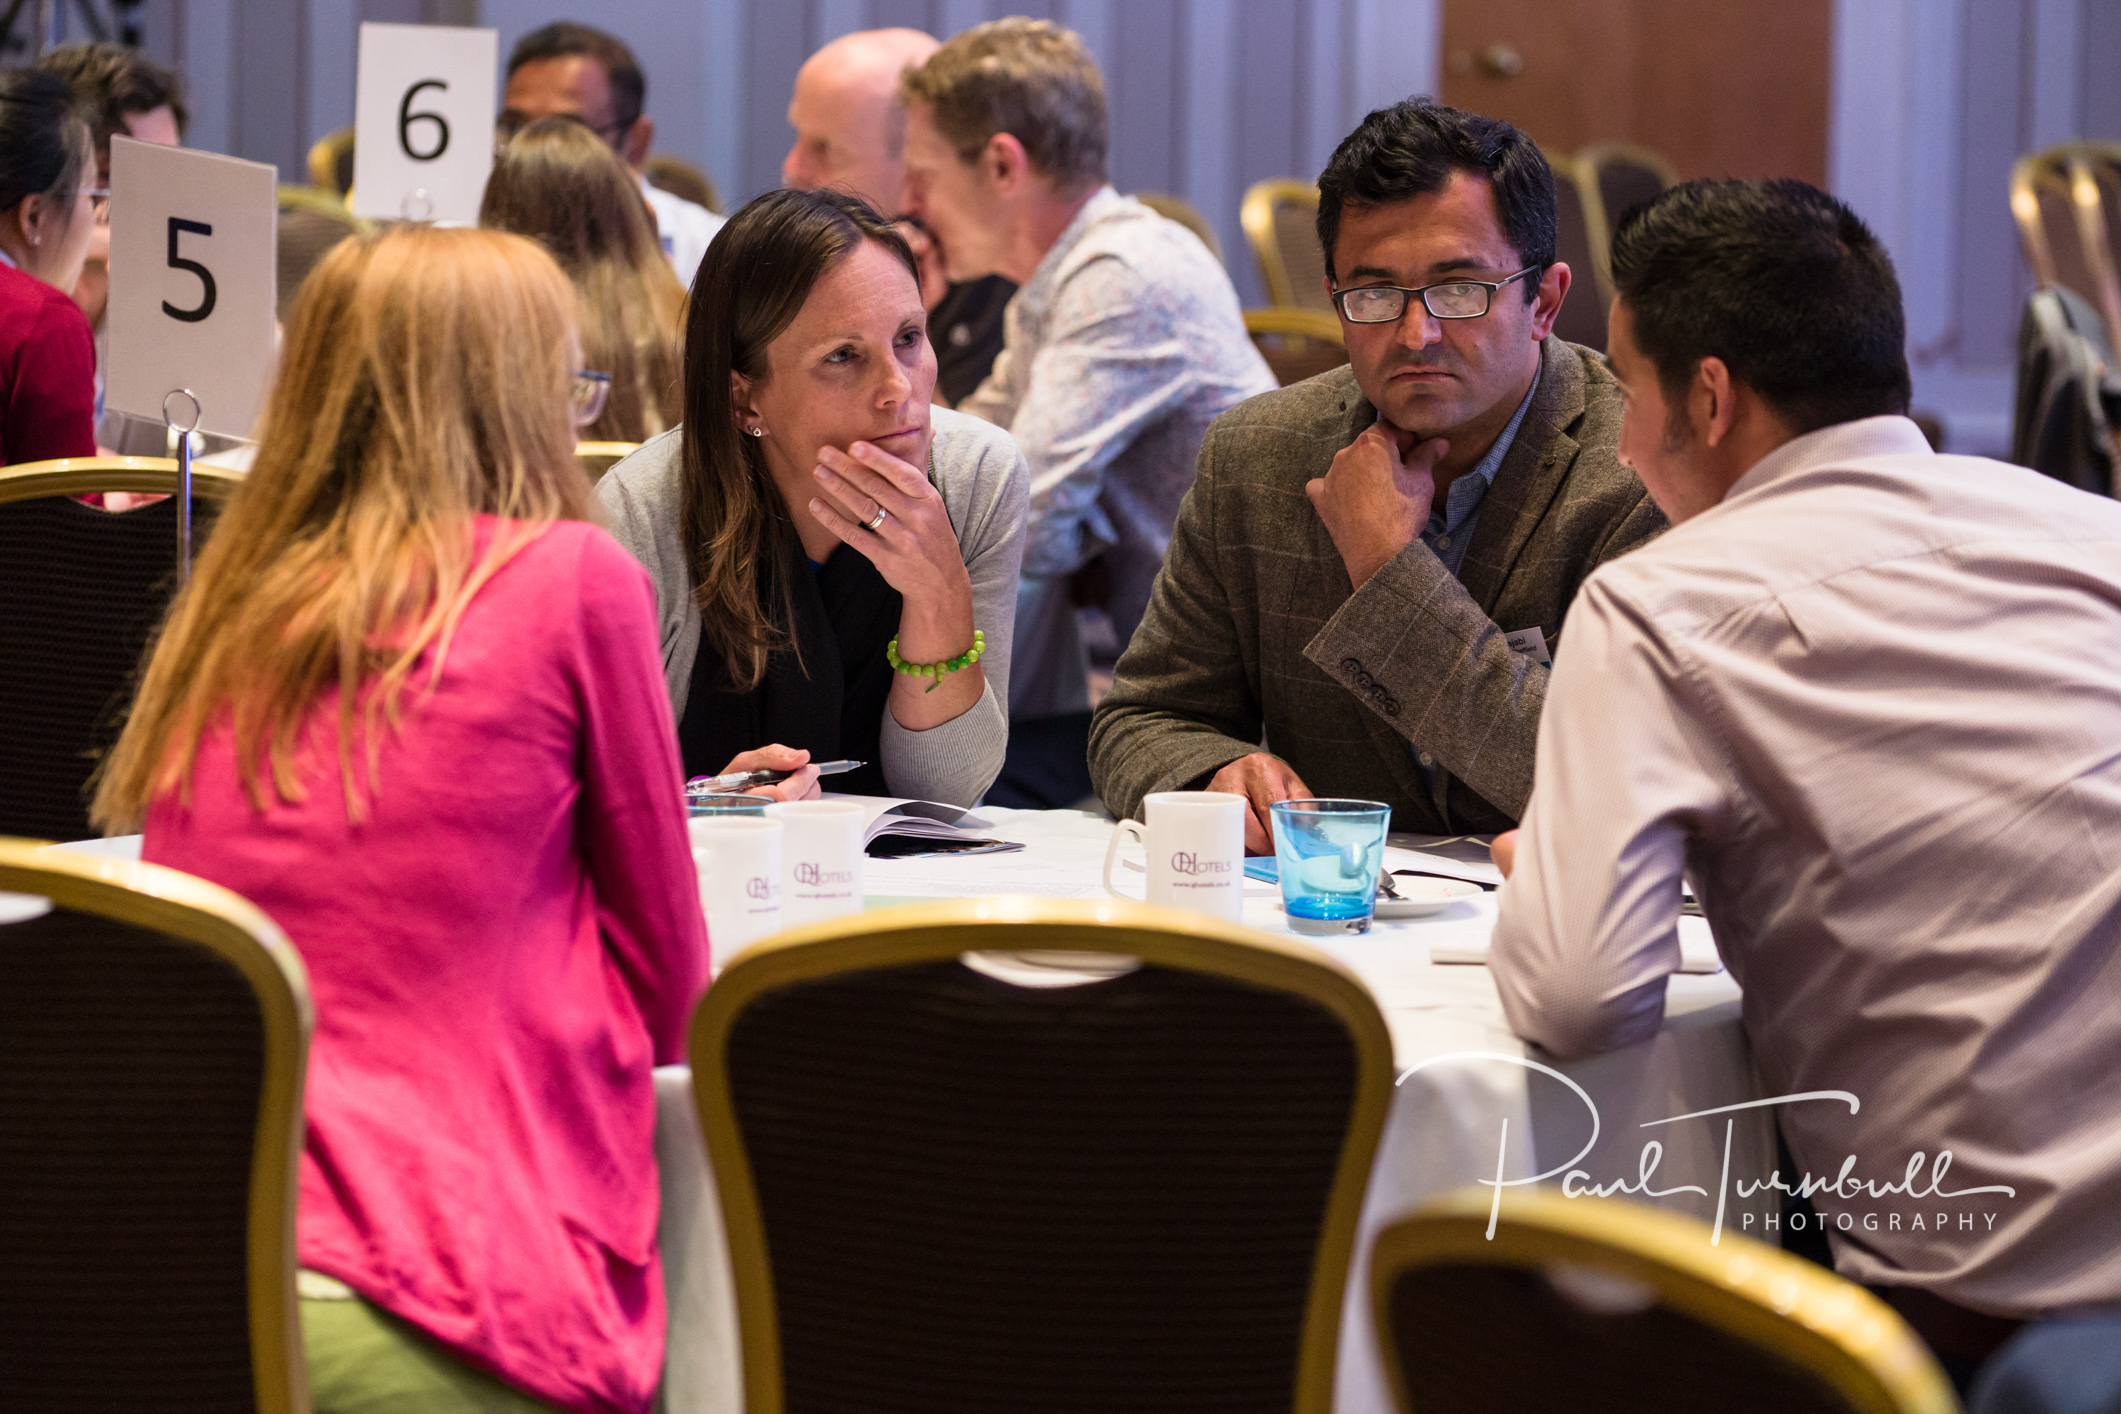 conference-event-photographer-queens-hotel-leeds-yorkshire-069.jpg